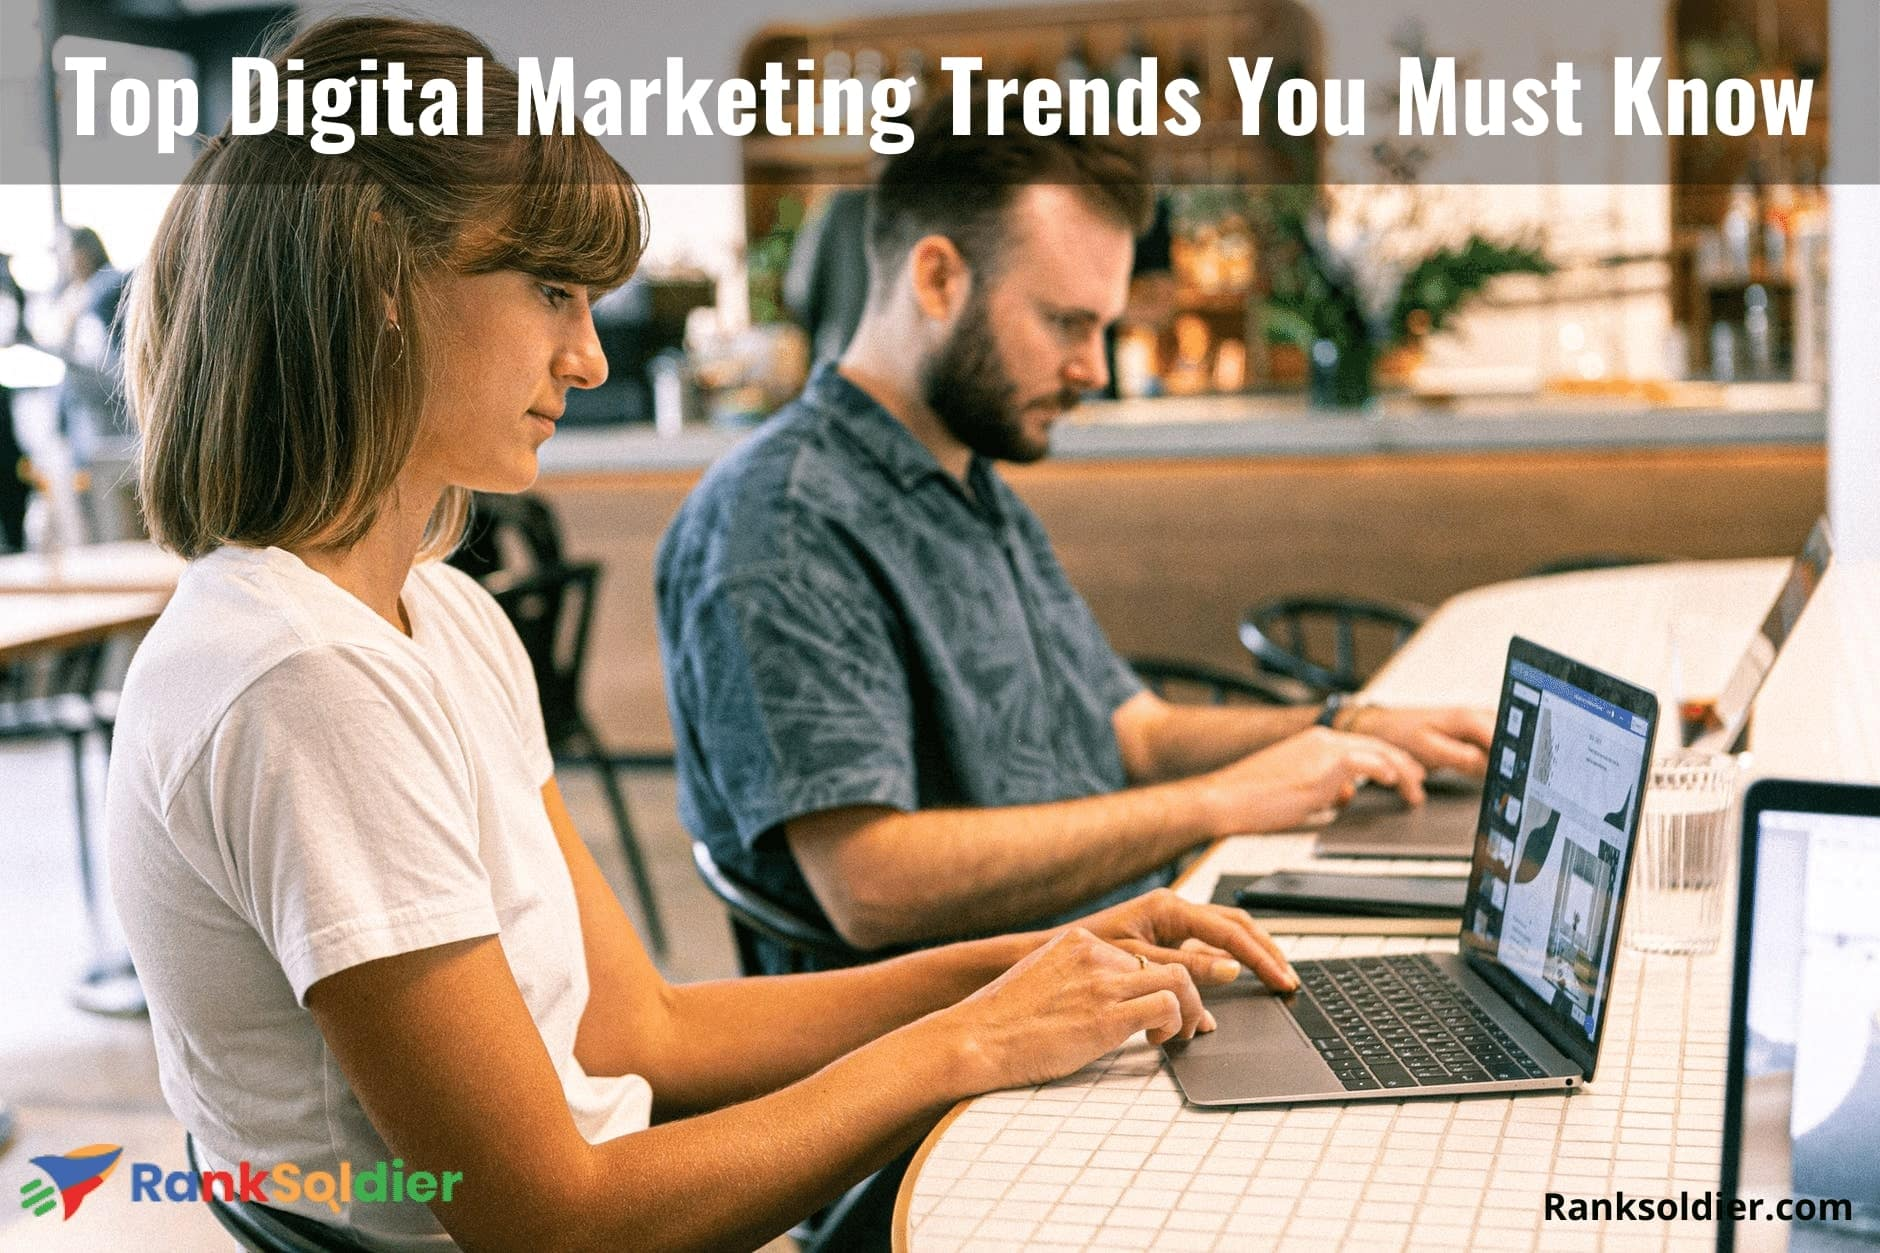 Top Digital Marketing Trends You Must Know